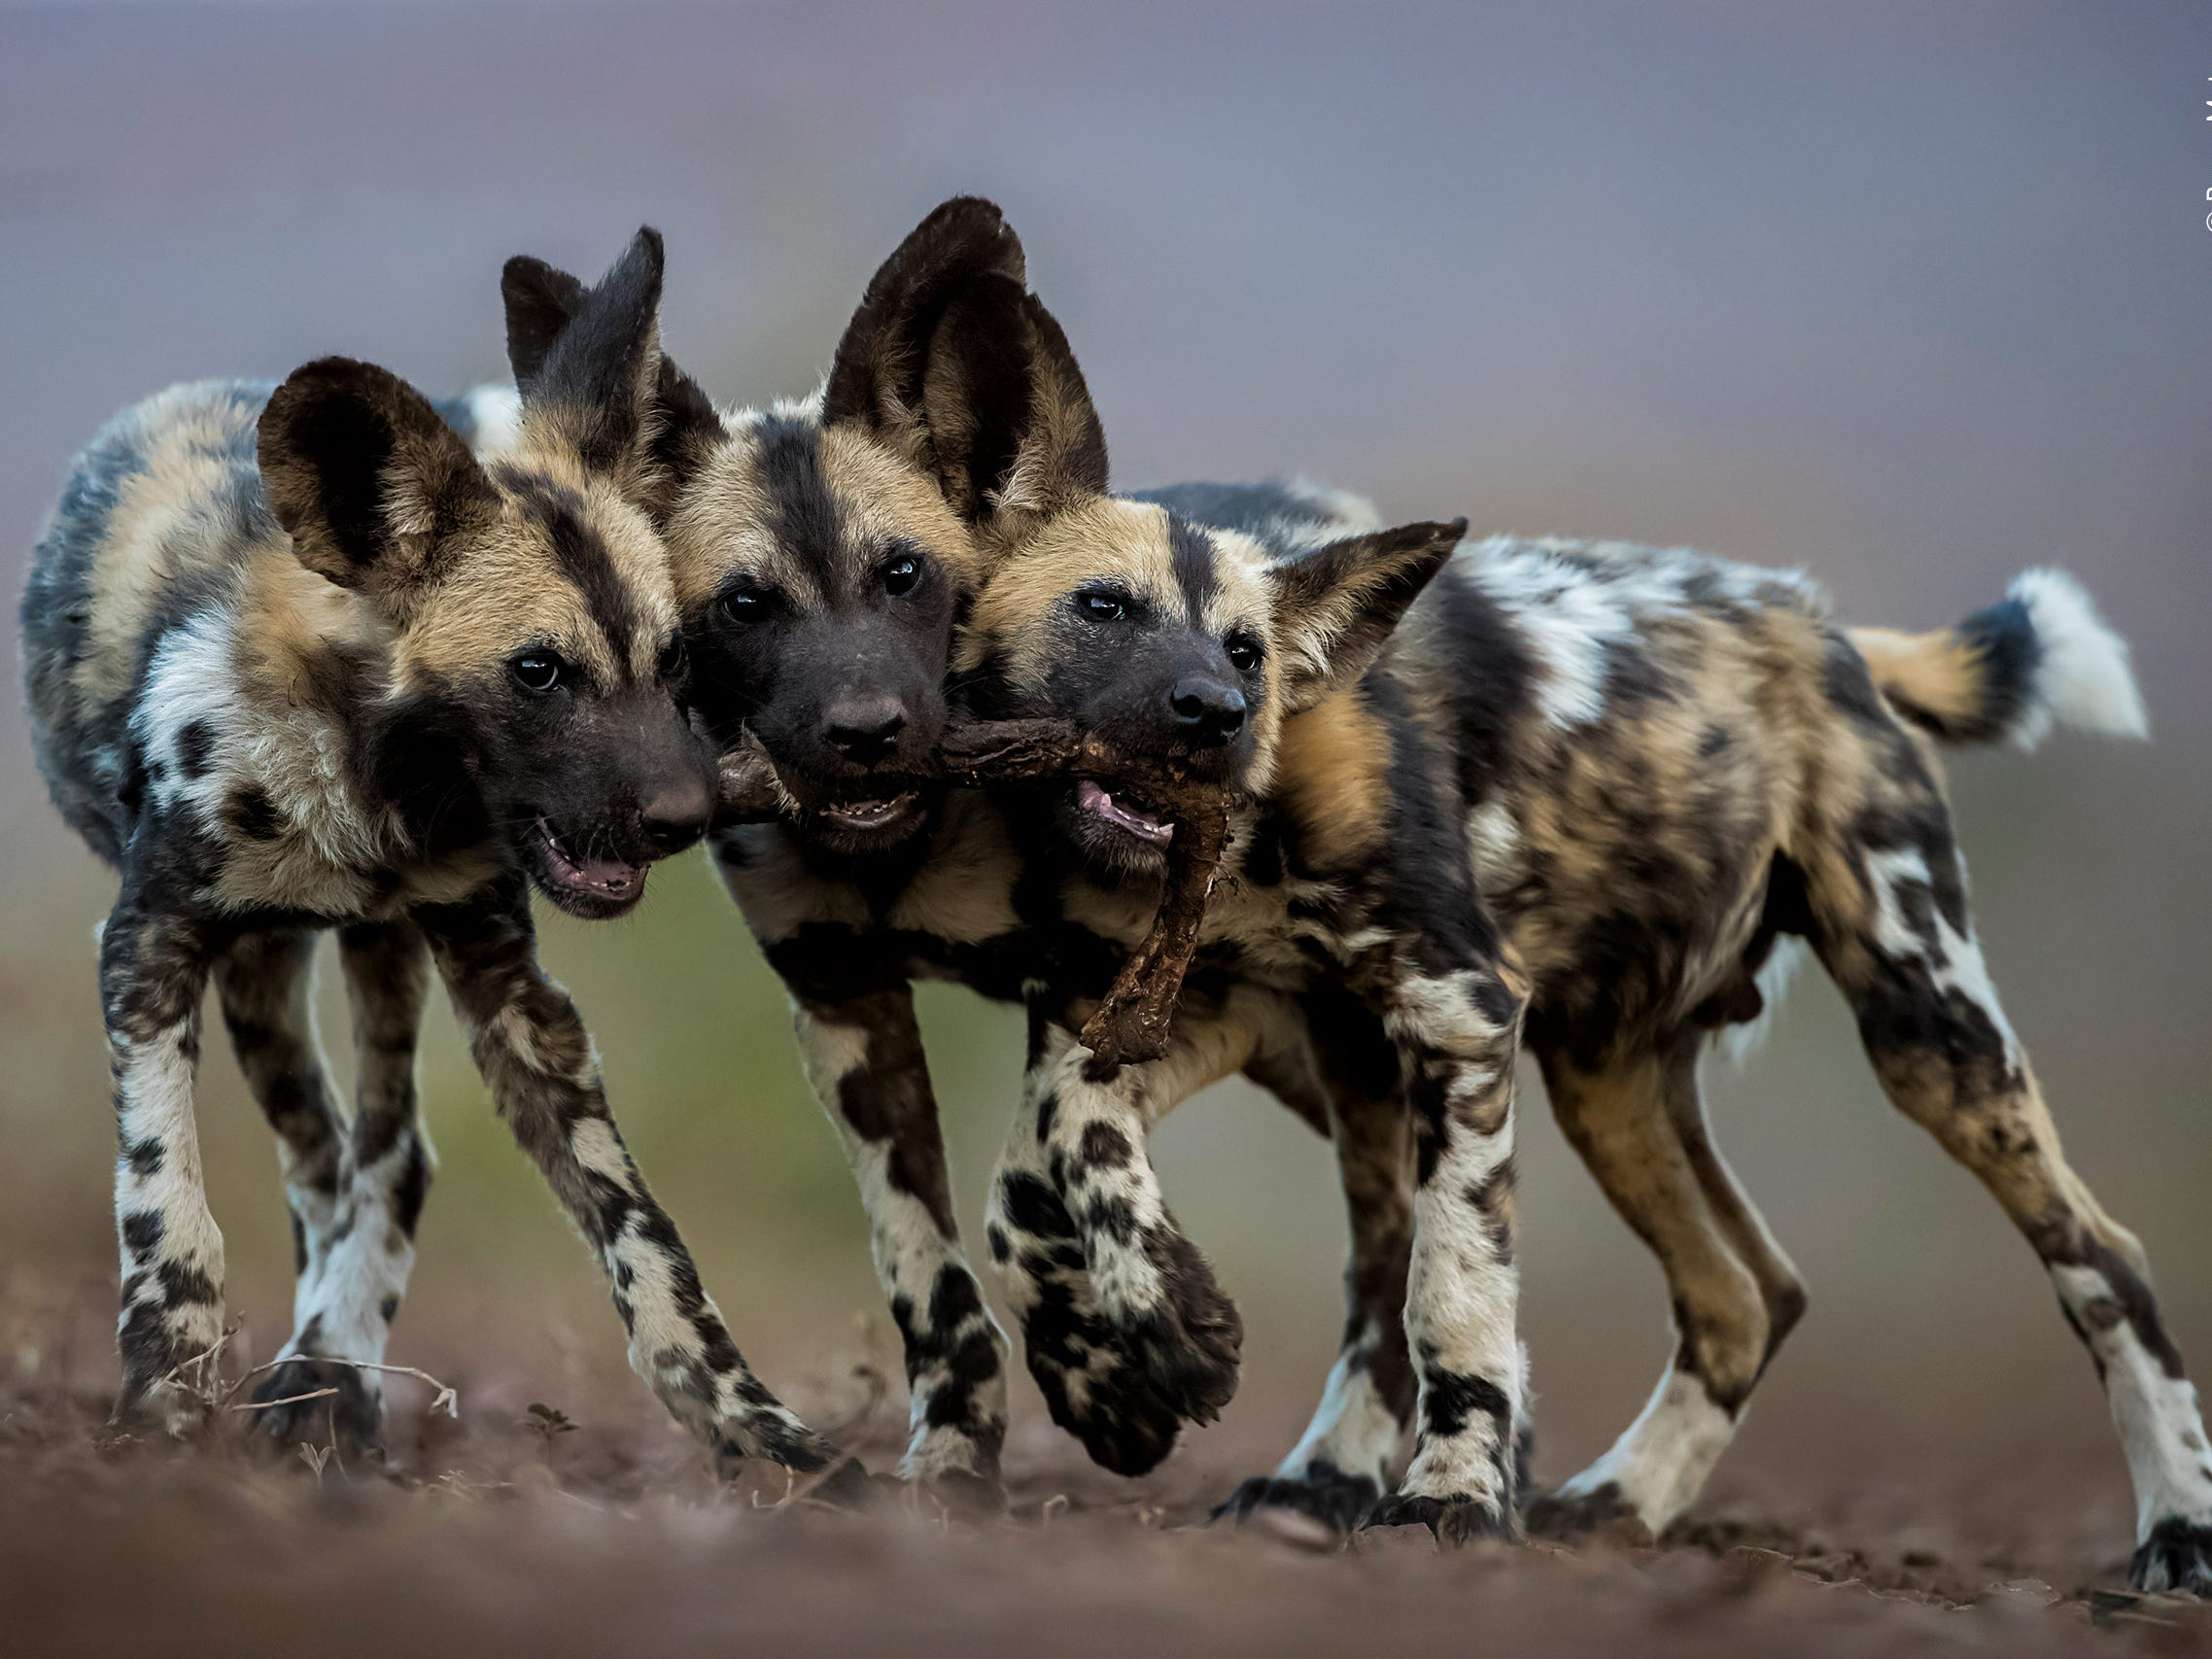 One Toy, Three Dogs by Bence Mate, Hungary -- While adult African wild dogs are merciless killers, their pups are extremely cute and play all day long. Bence photographed these brothers in Mkuze, South Africa – they all wanted to play with the leg of an impala and were trying to drag it in three different directions! -- Canon EOS-1DX Mark II; 200-400mm lens (35mm equivalent: 197.2-394.3 mm); 1/1800 sec at f4.0; 4000 ISO.